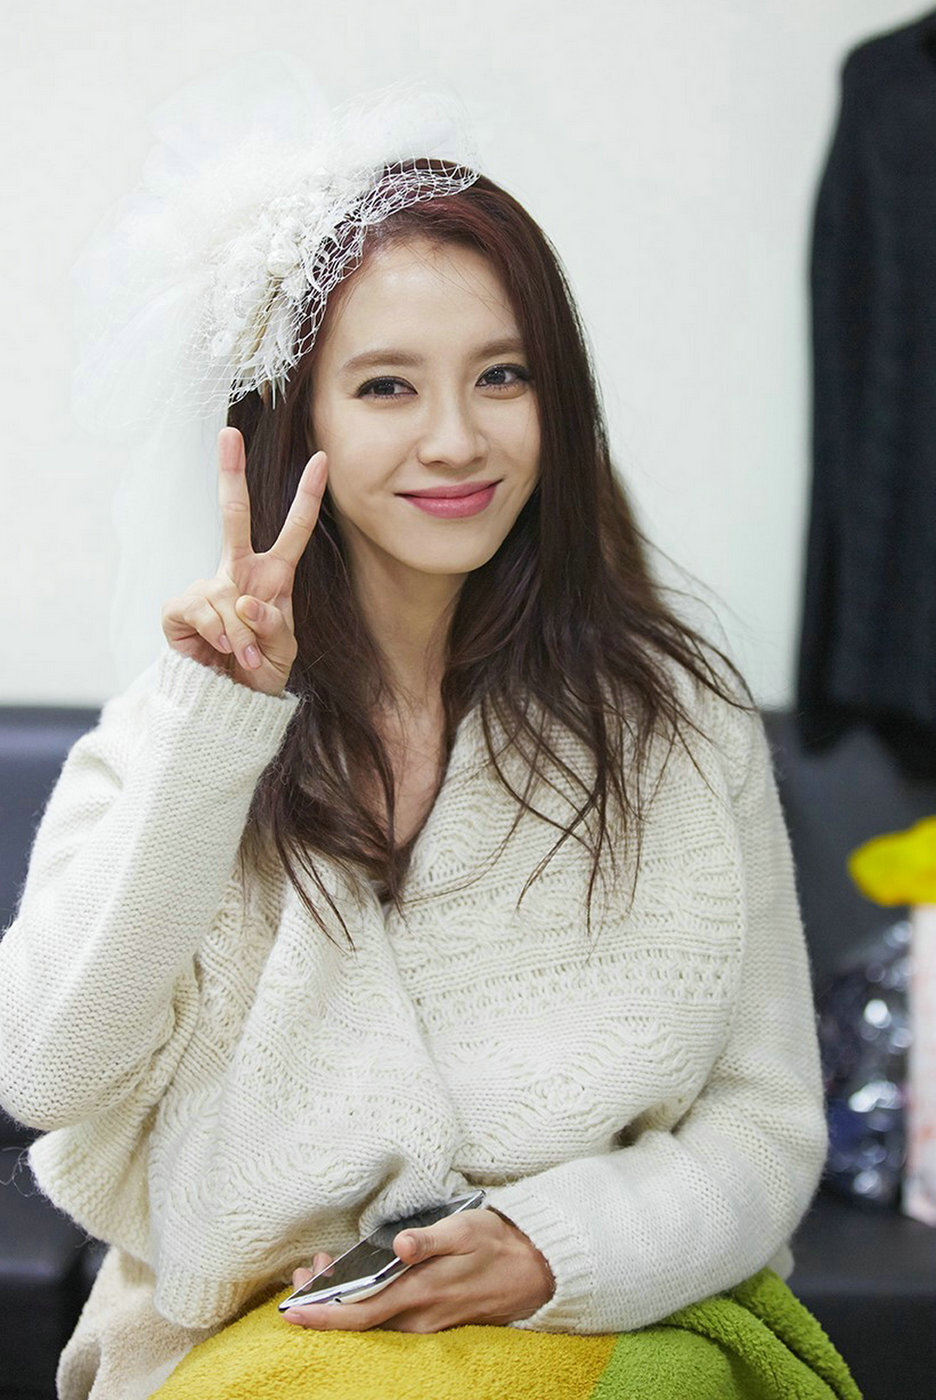 song-ji-hyo-dating-ceo-cjes